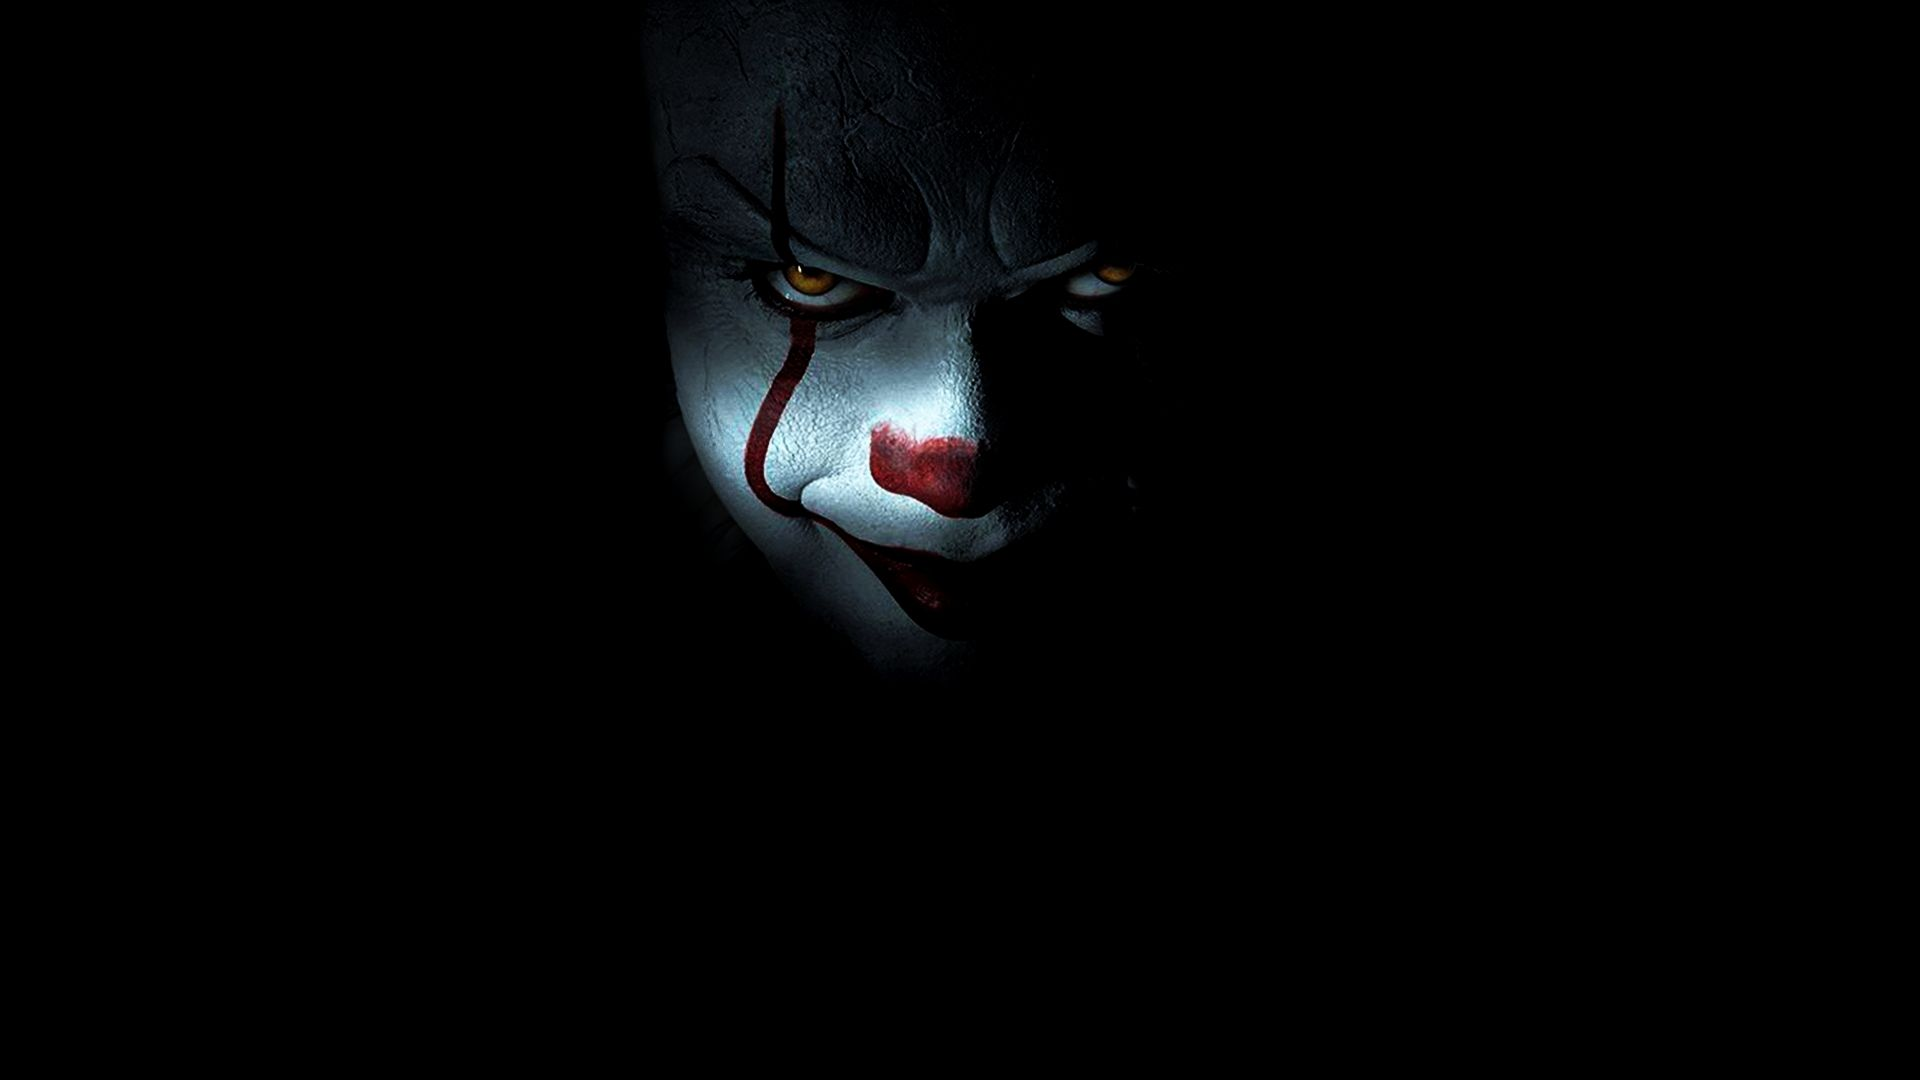 10 Best Pennywise The Clown Wallpaper Full Hd 1080p For Pc Background Scary Wallpaper Halloween Wallpaper Pennywise The Clown